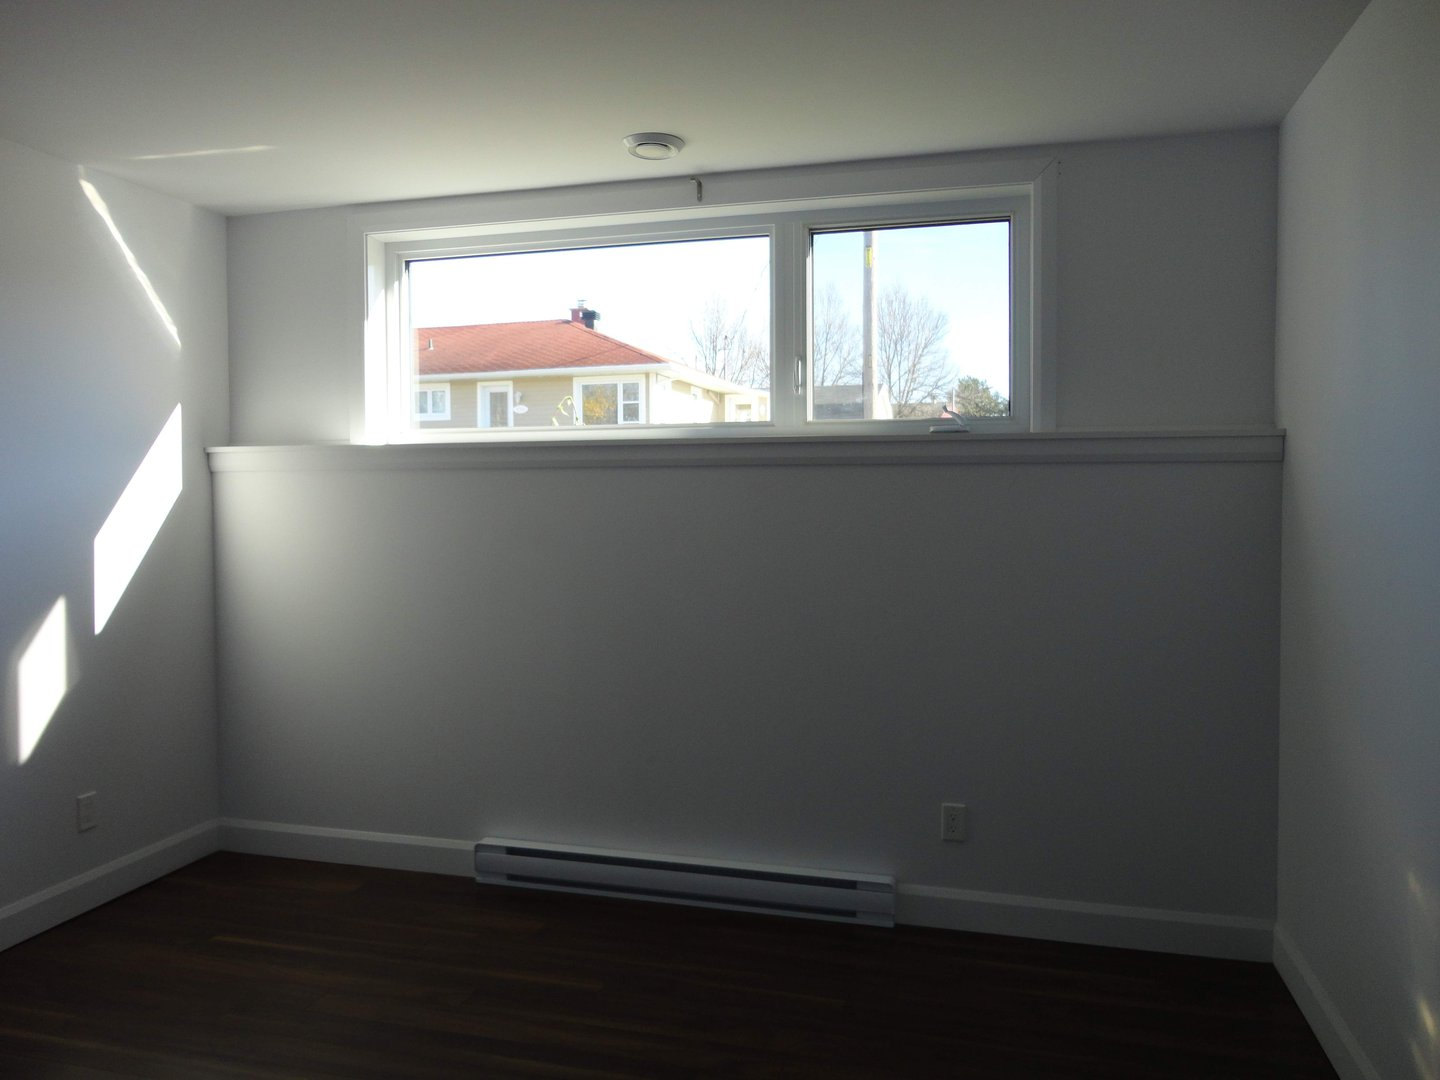 Studio for rent at 159 Rue Louis-Philippe-Roy, Québec City, QC.